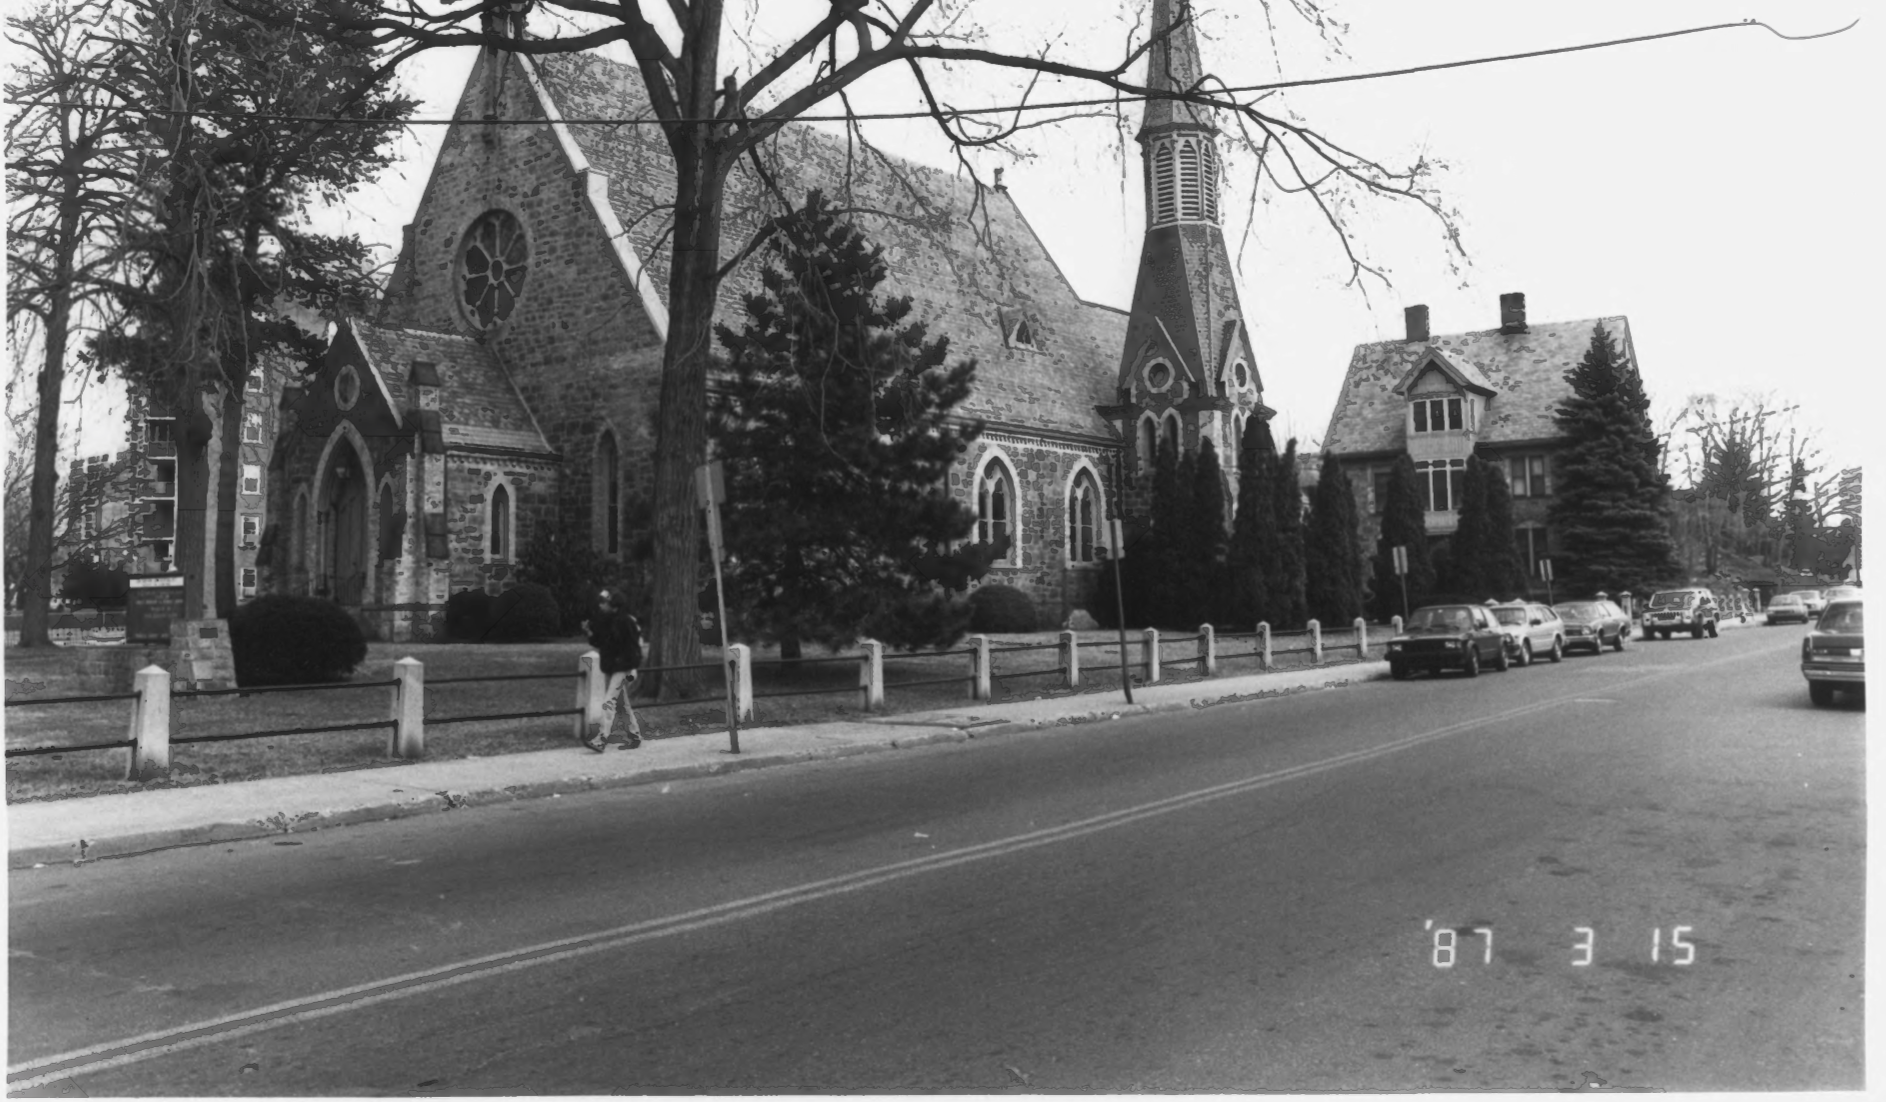 The Stamford Unitarian Universalist in 3/1987 as photographed by the Connecticut Historical Commission